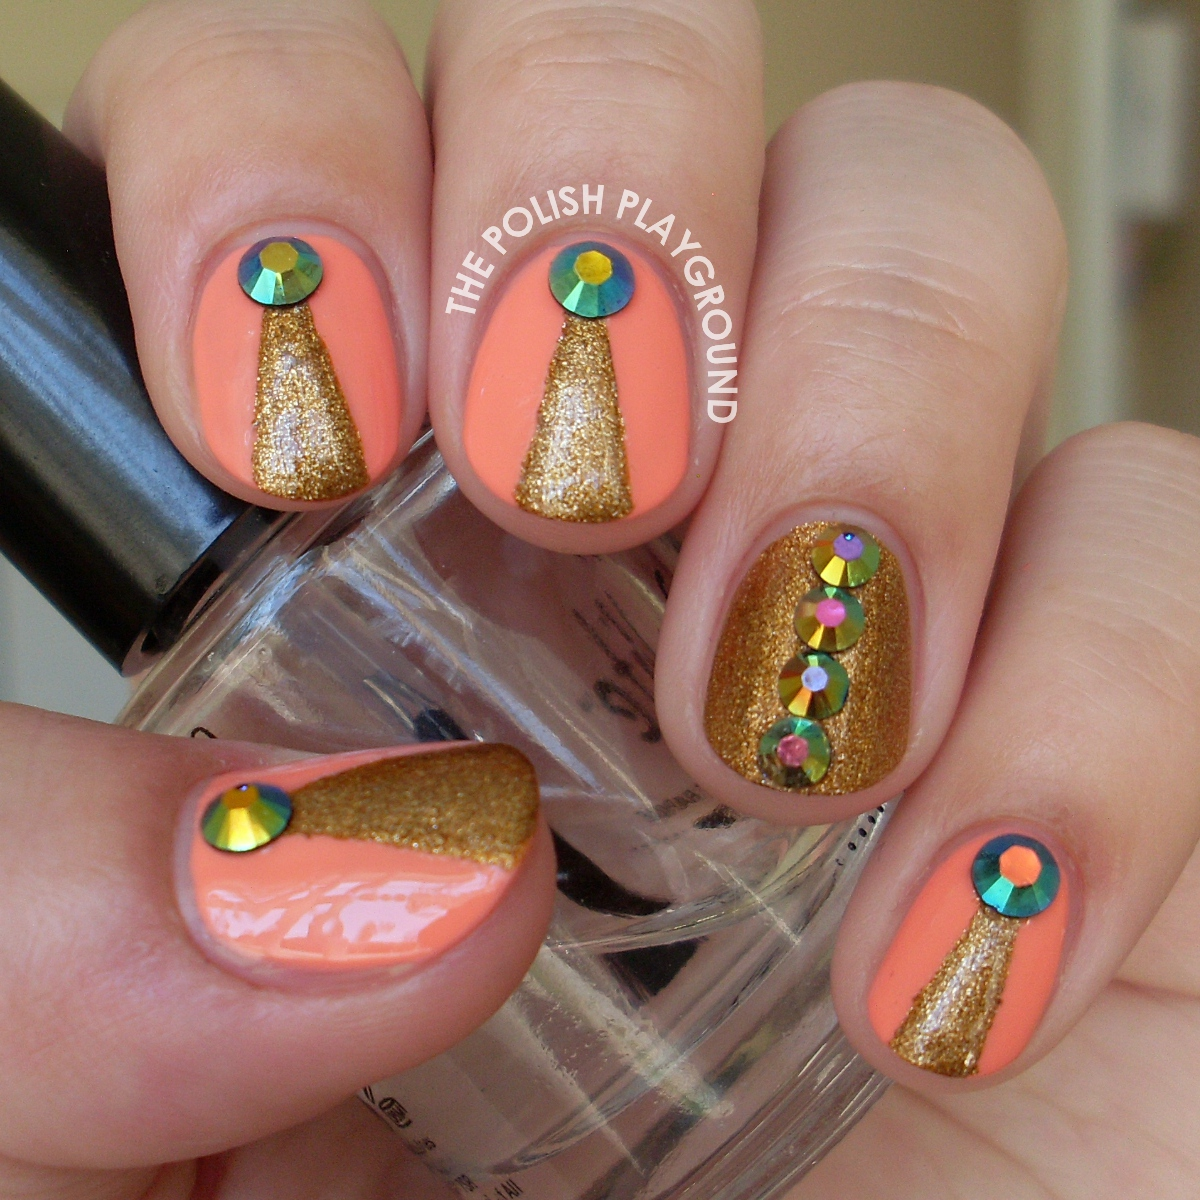 Peach and Gold with Round Rhinestones Nail Art